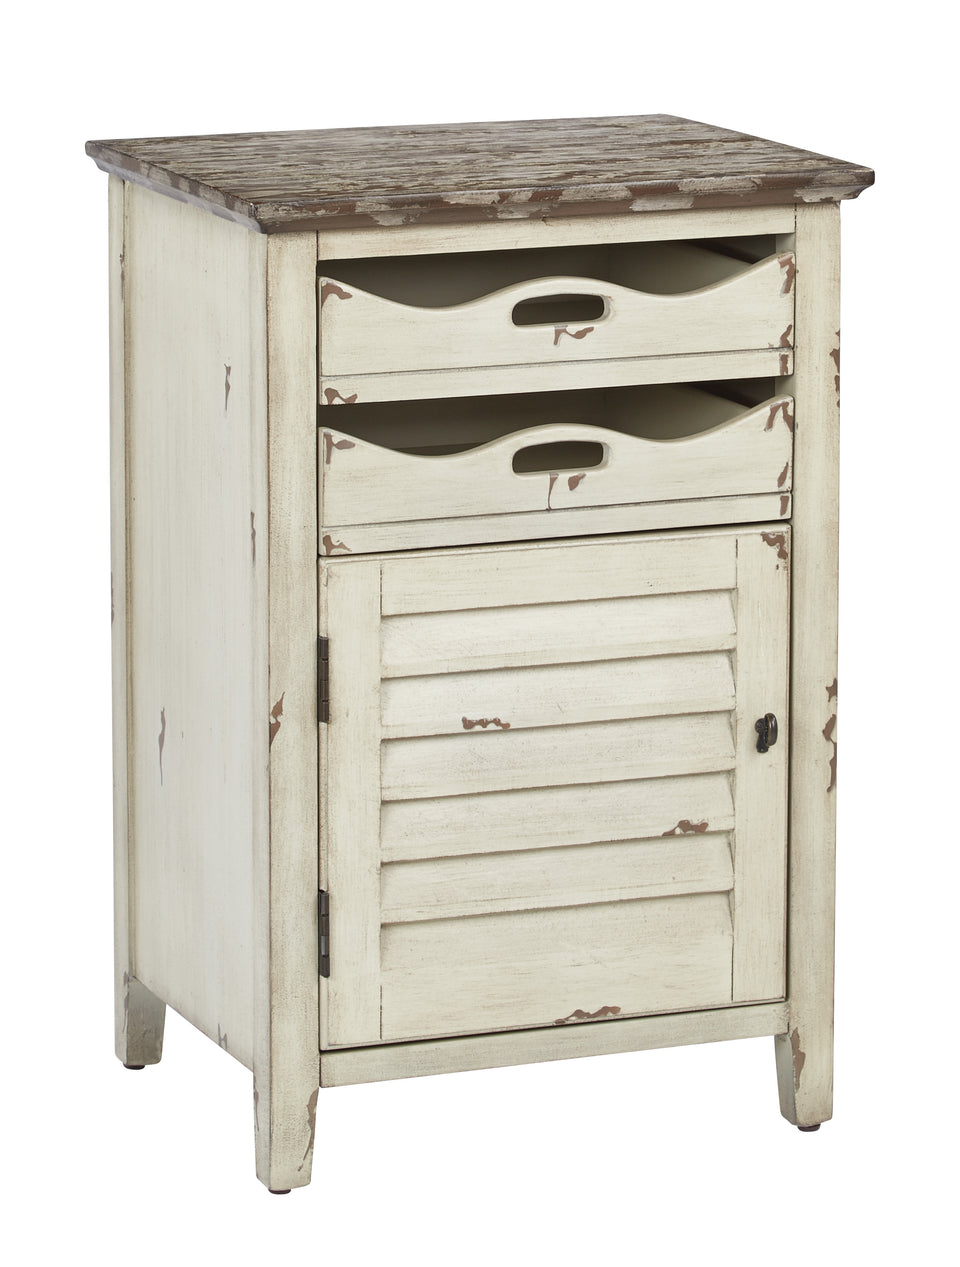 charlotte side table shutter door and two letter tray slide out drawers in distressed white